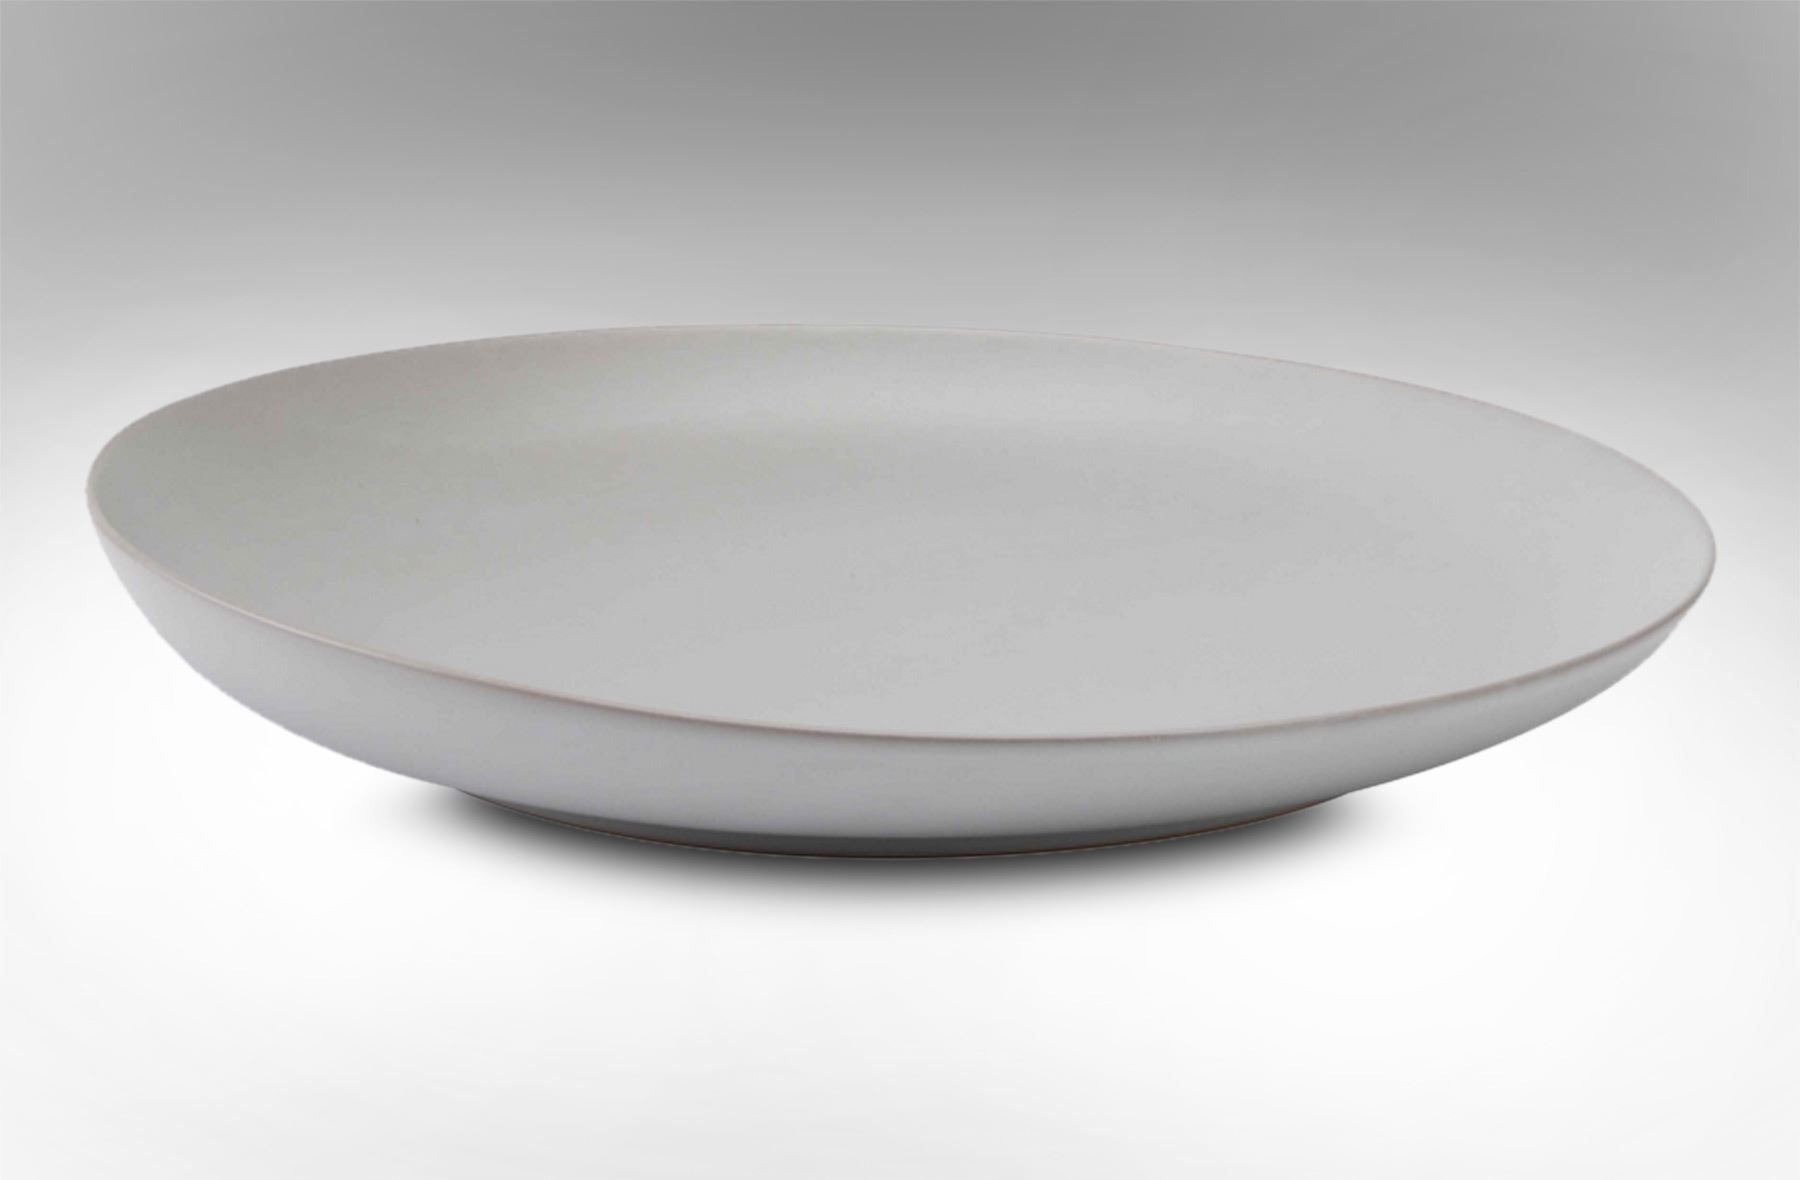 Rice Furniture Tide Signature Dining Plate Coastal White